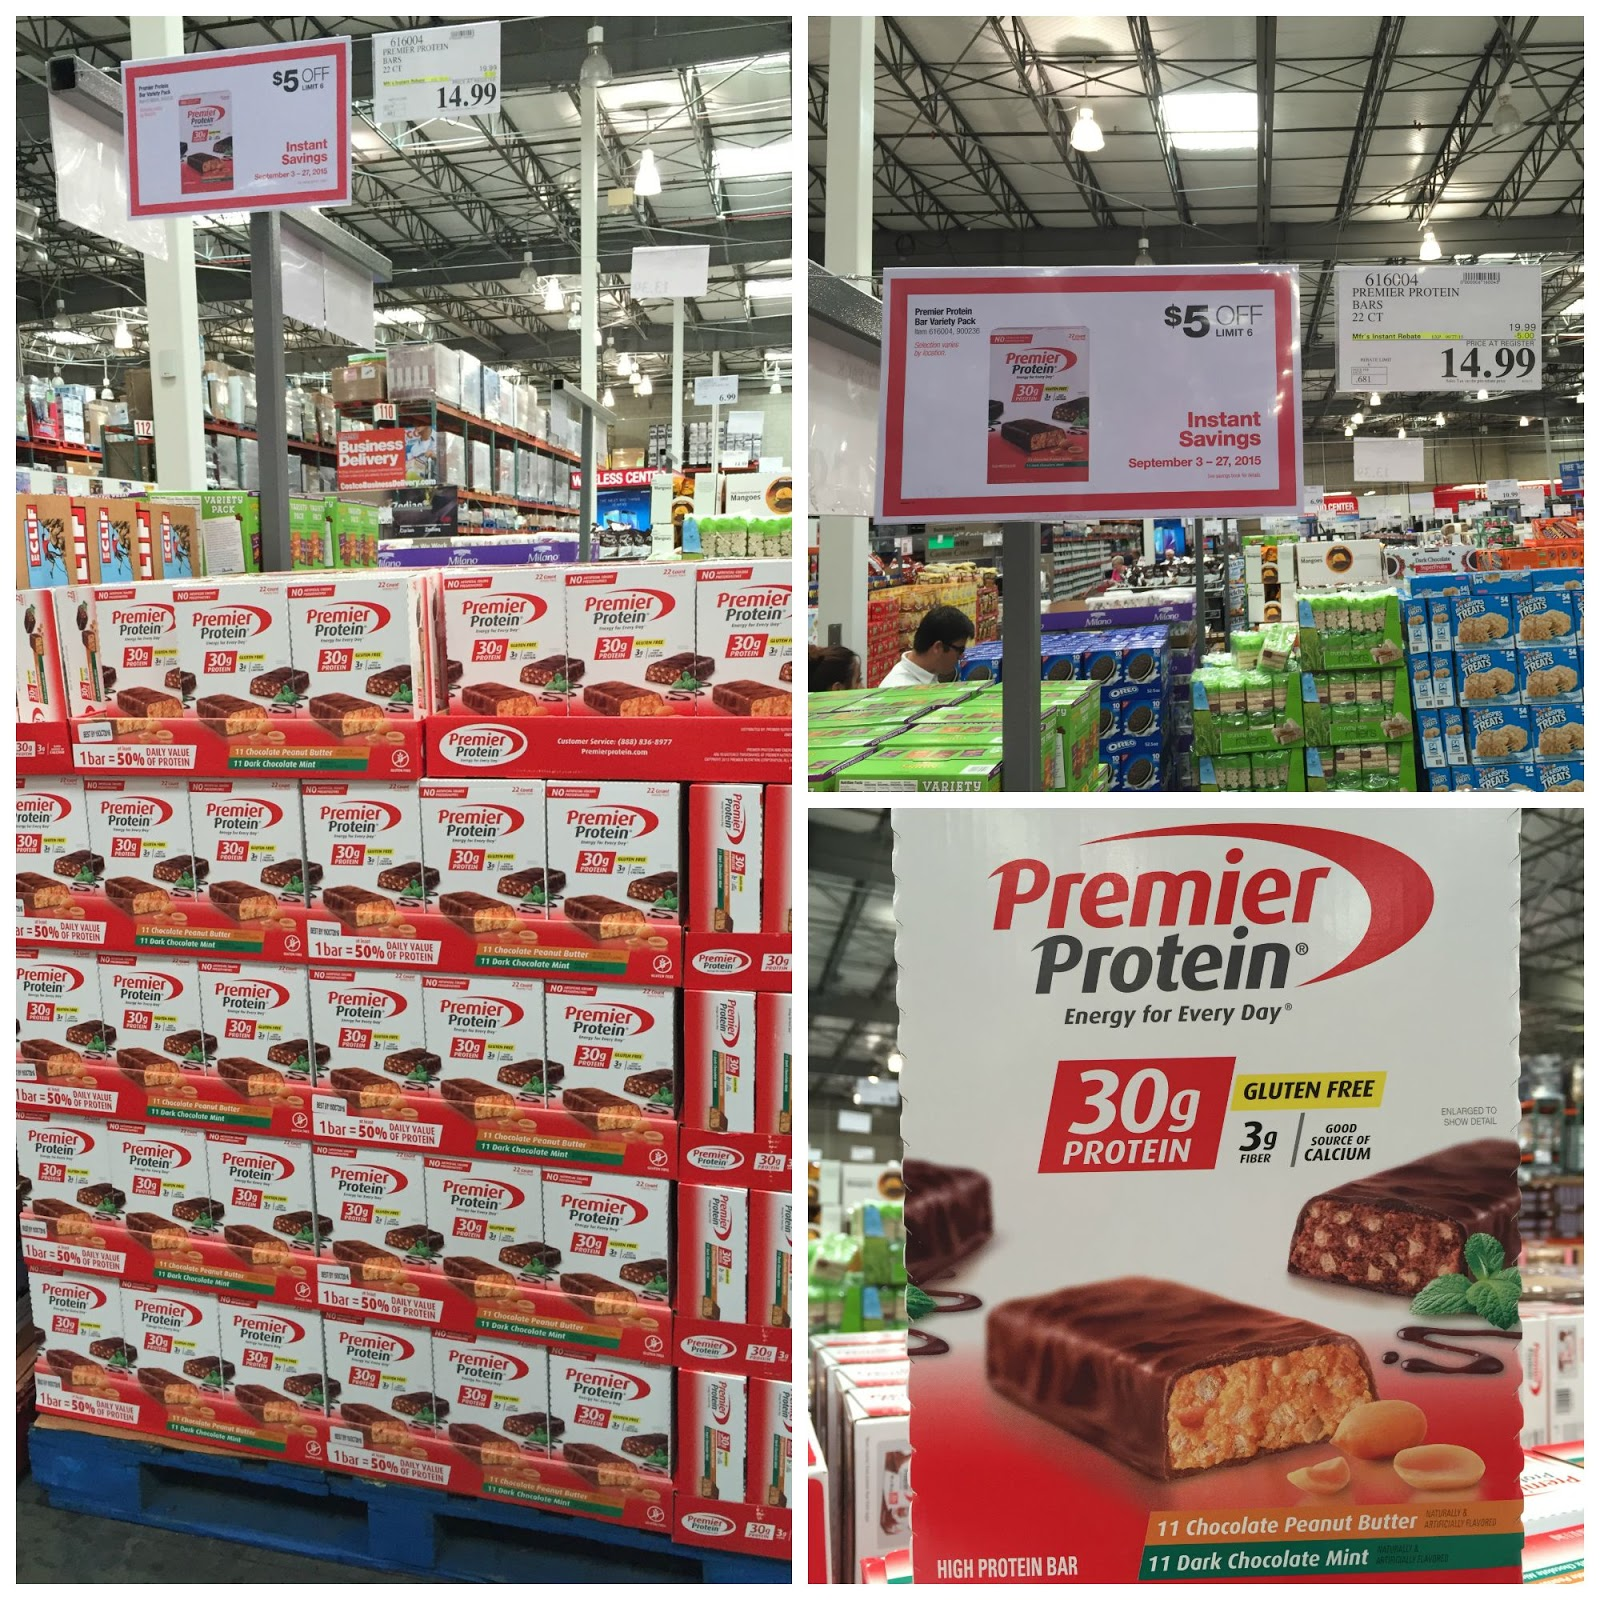 theworldaccordingtoeggface: Heads Up: Premier Protein Bars $5 off ...